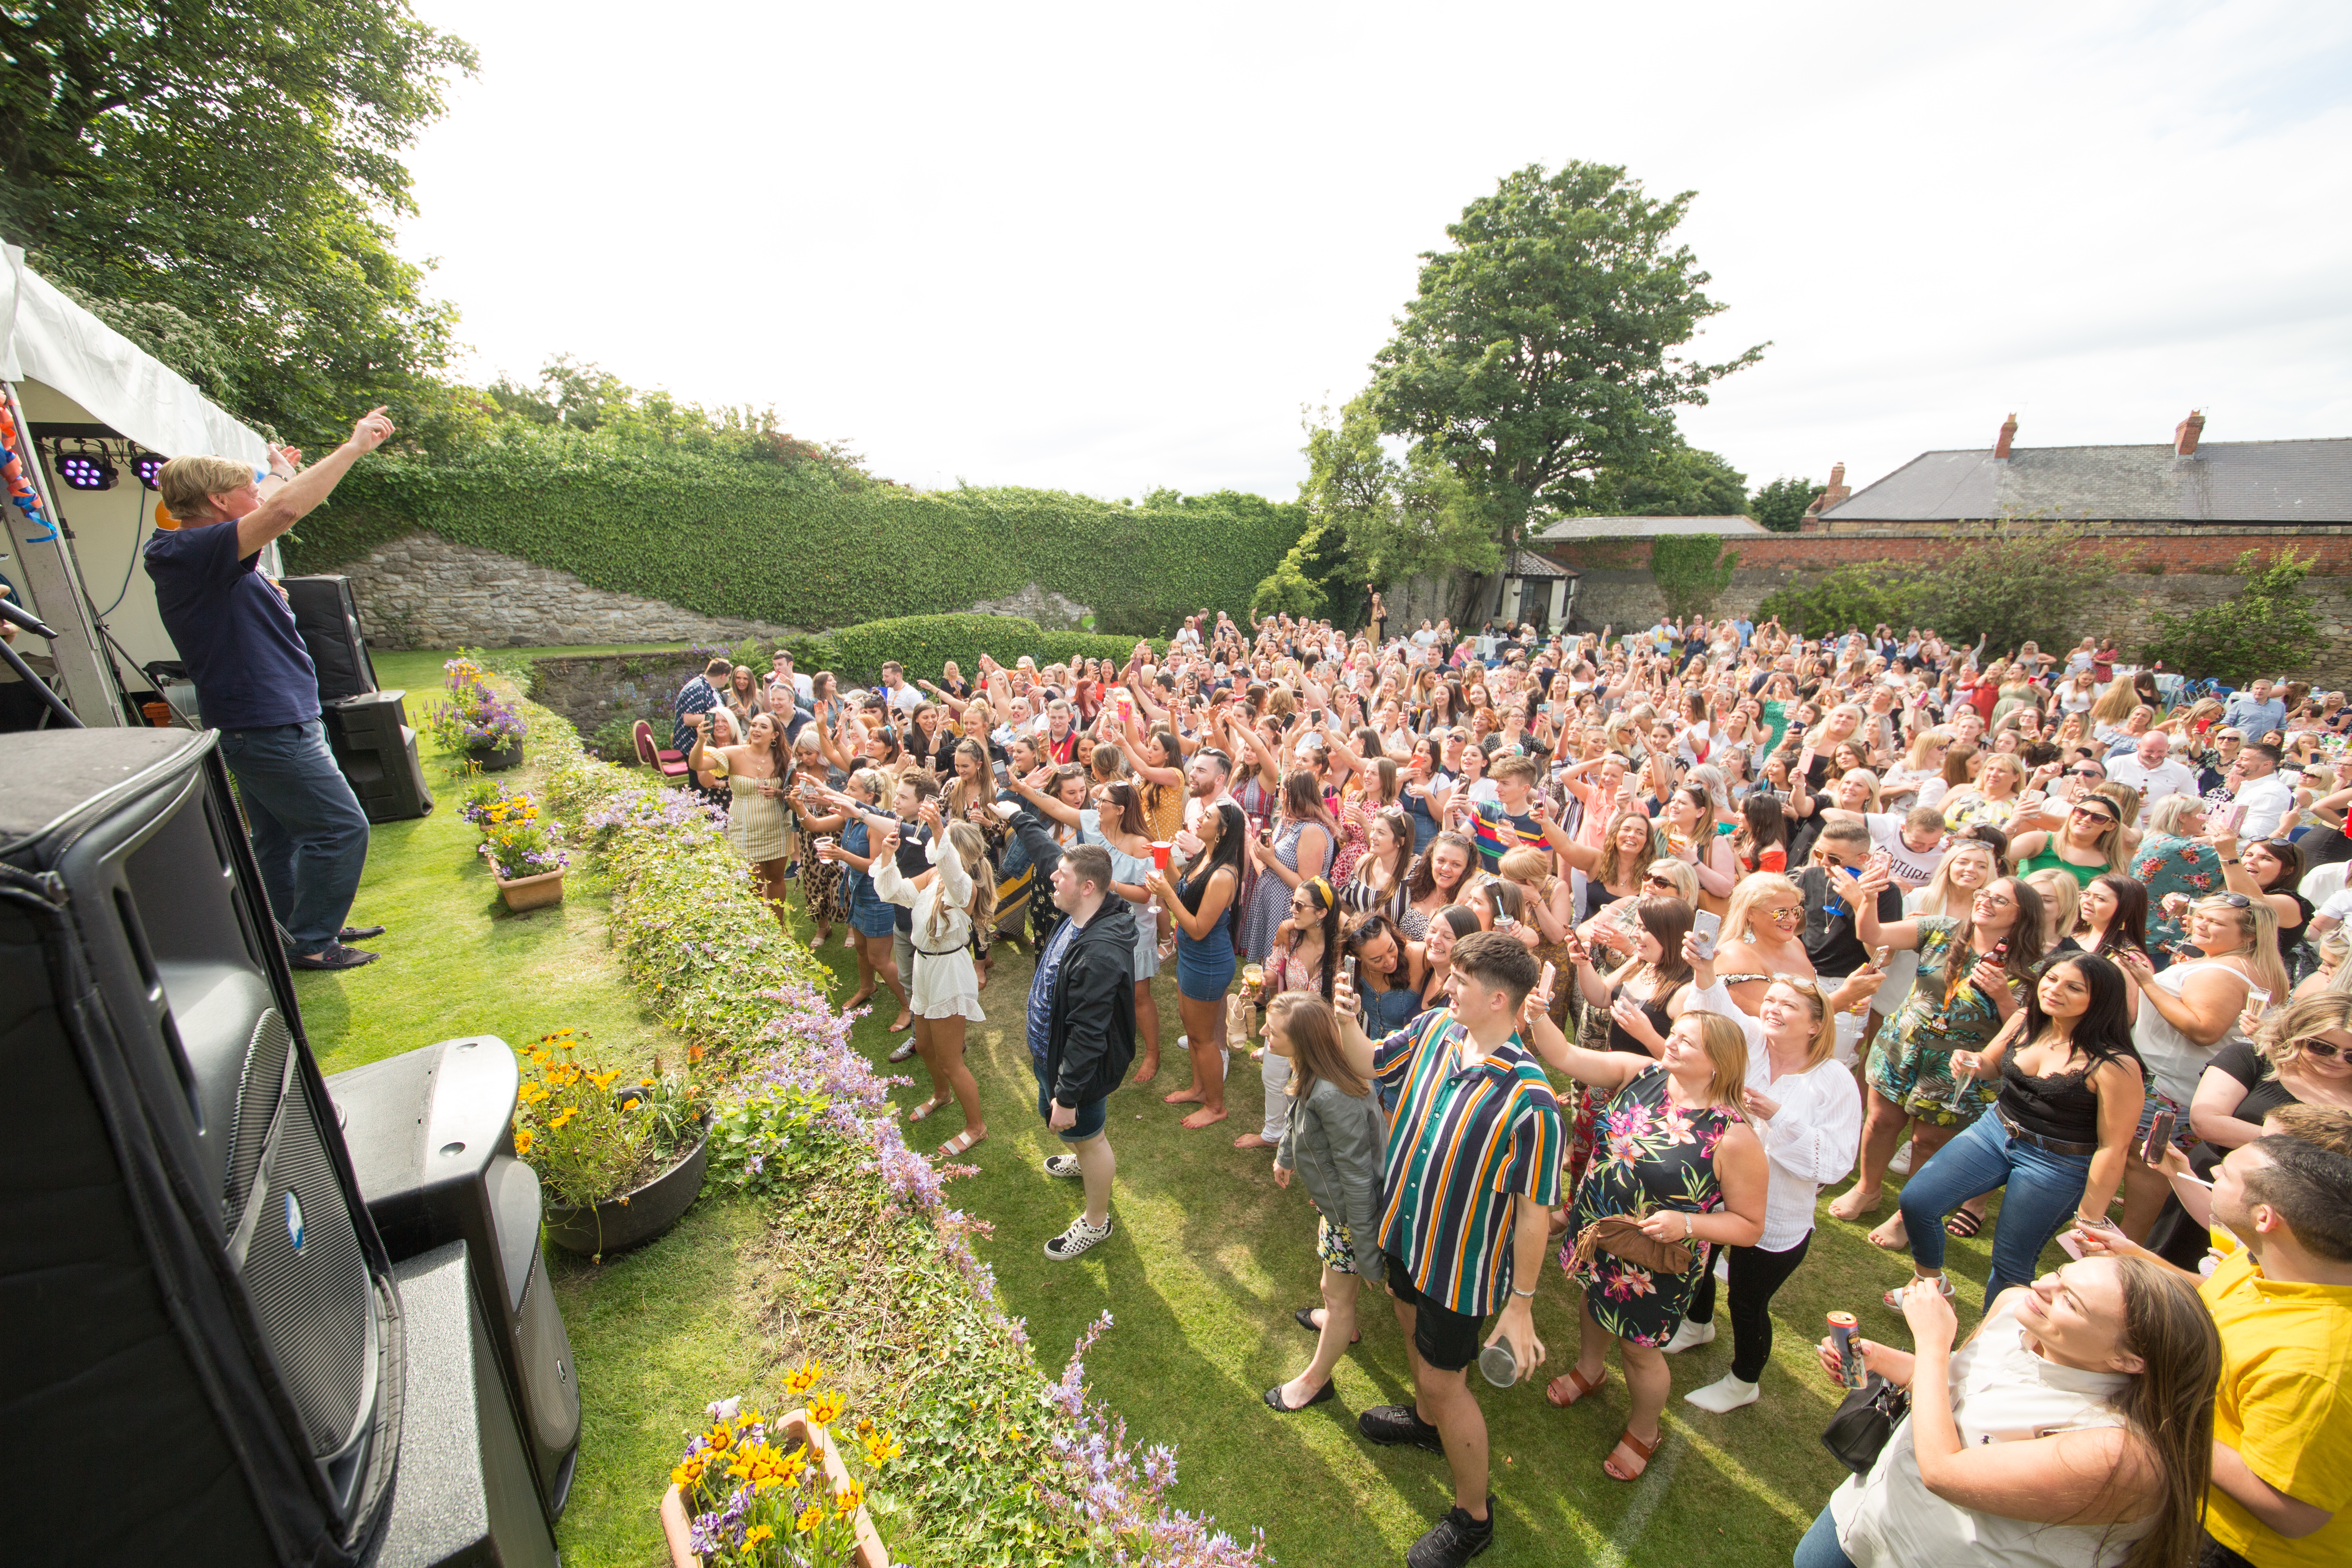 This year's Garden Party was the largest event yet